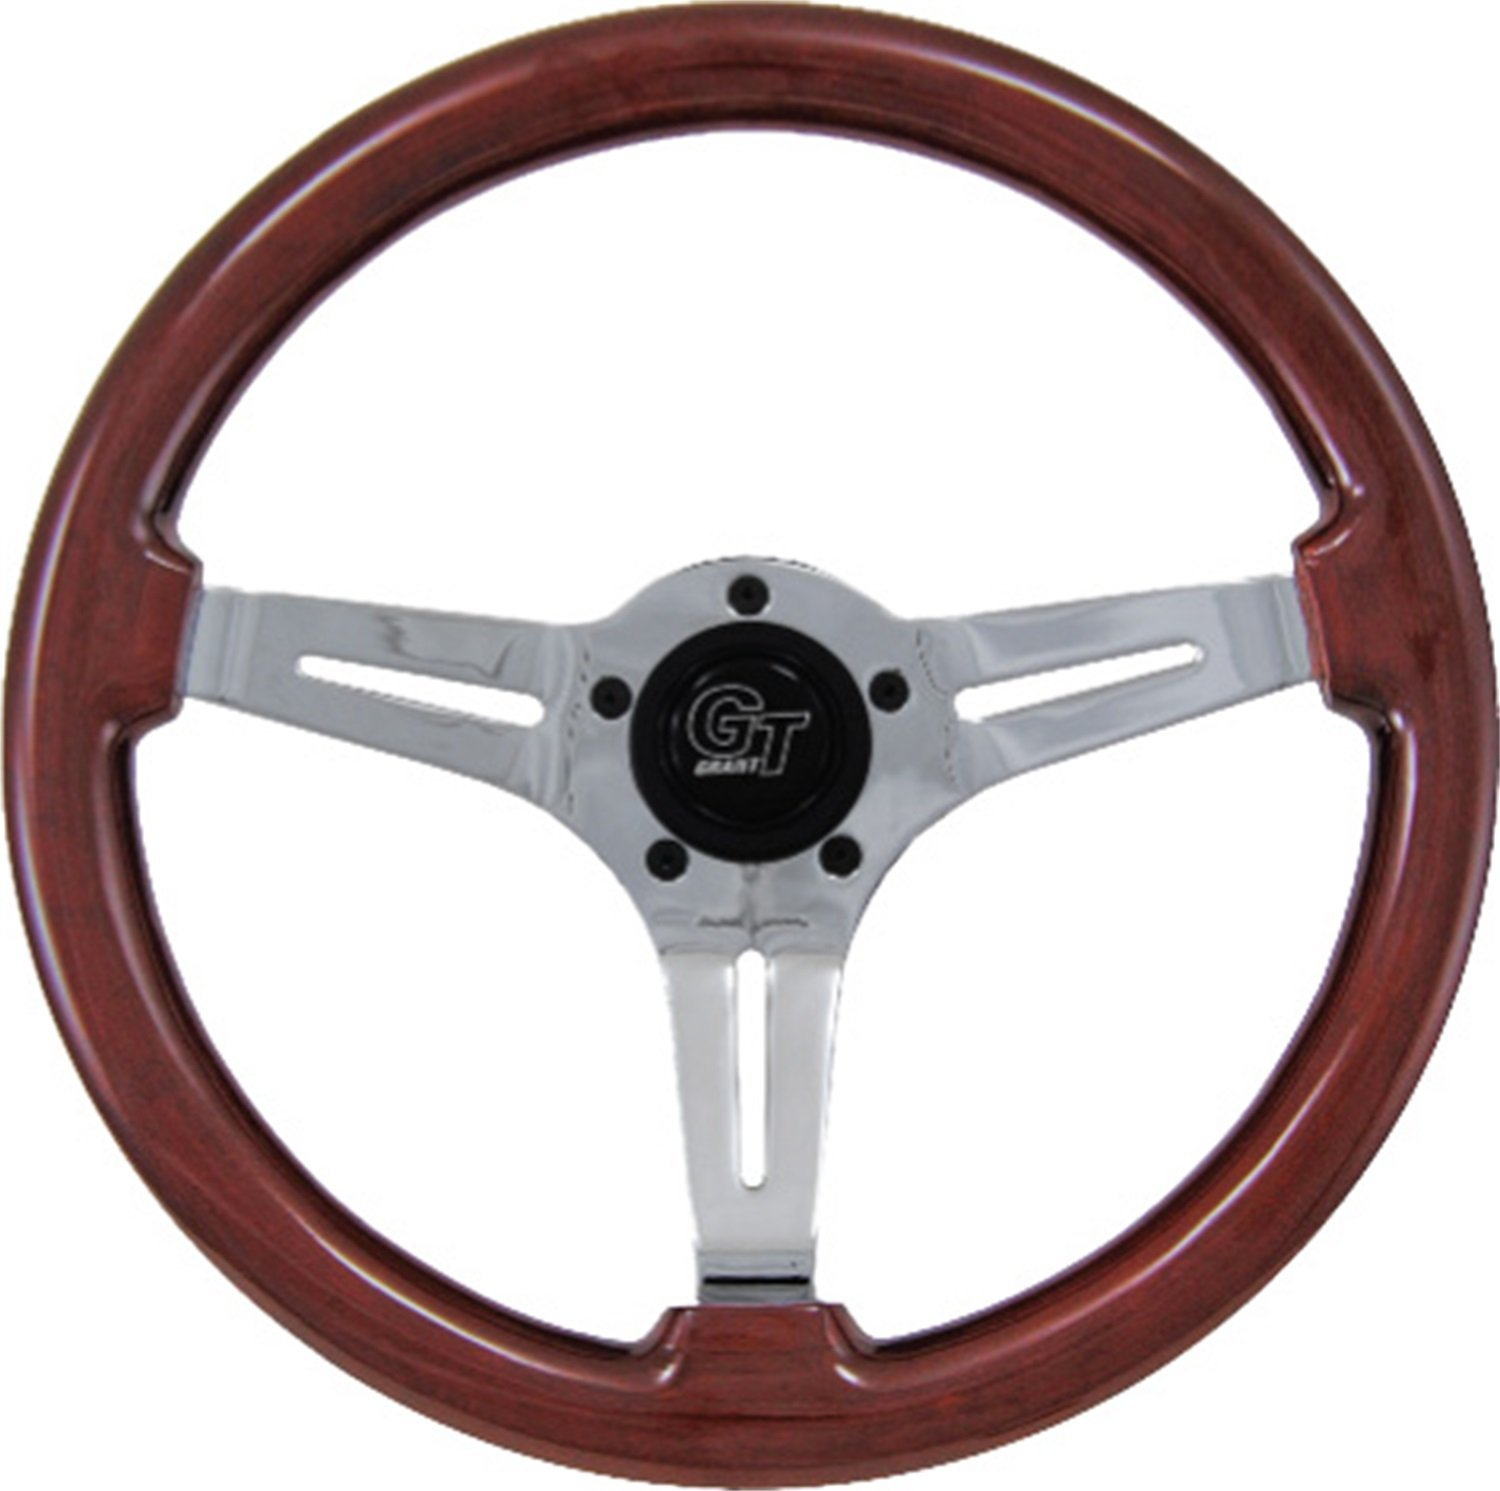 Amazon.com: Grant 377 GT Sport Wood Steering Wheel: Automotive